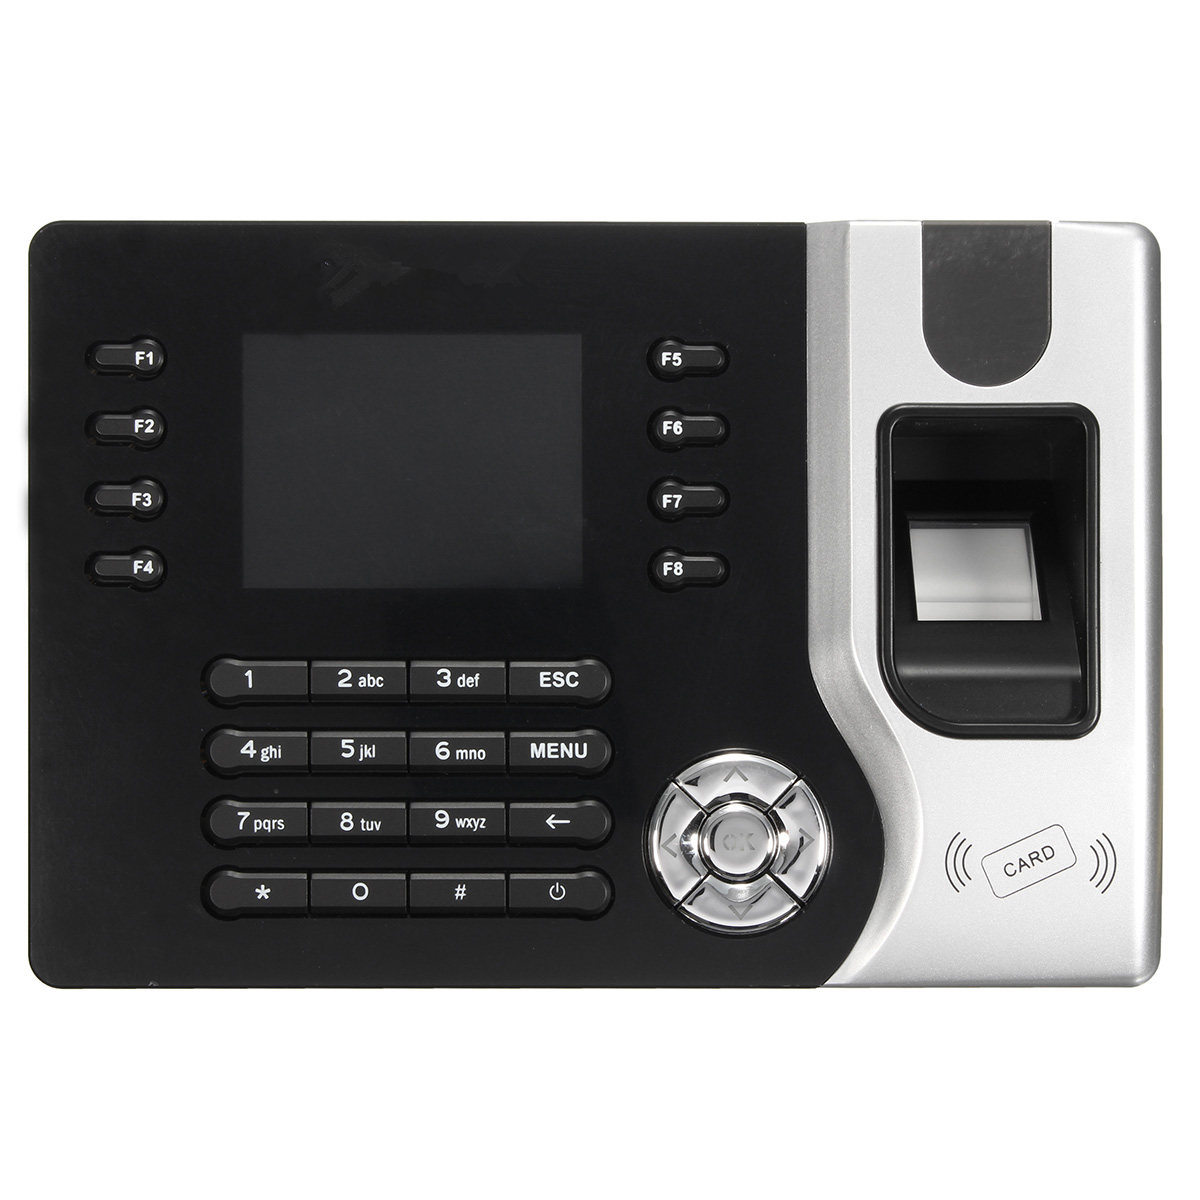 2.4inch TCP/IP Fingerprint Attendance Machine Access Control Time Clock Recording System Finger Print Password ID Card Mode tcp ip fingerprint time attendance color screen 2000 user time attendance fingerprint password rfid card time atteendance